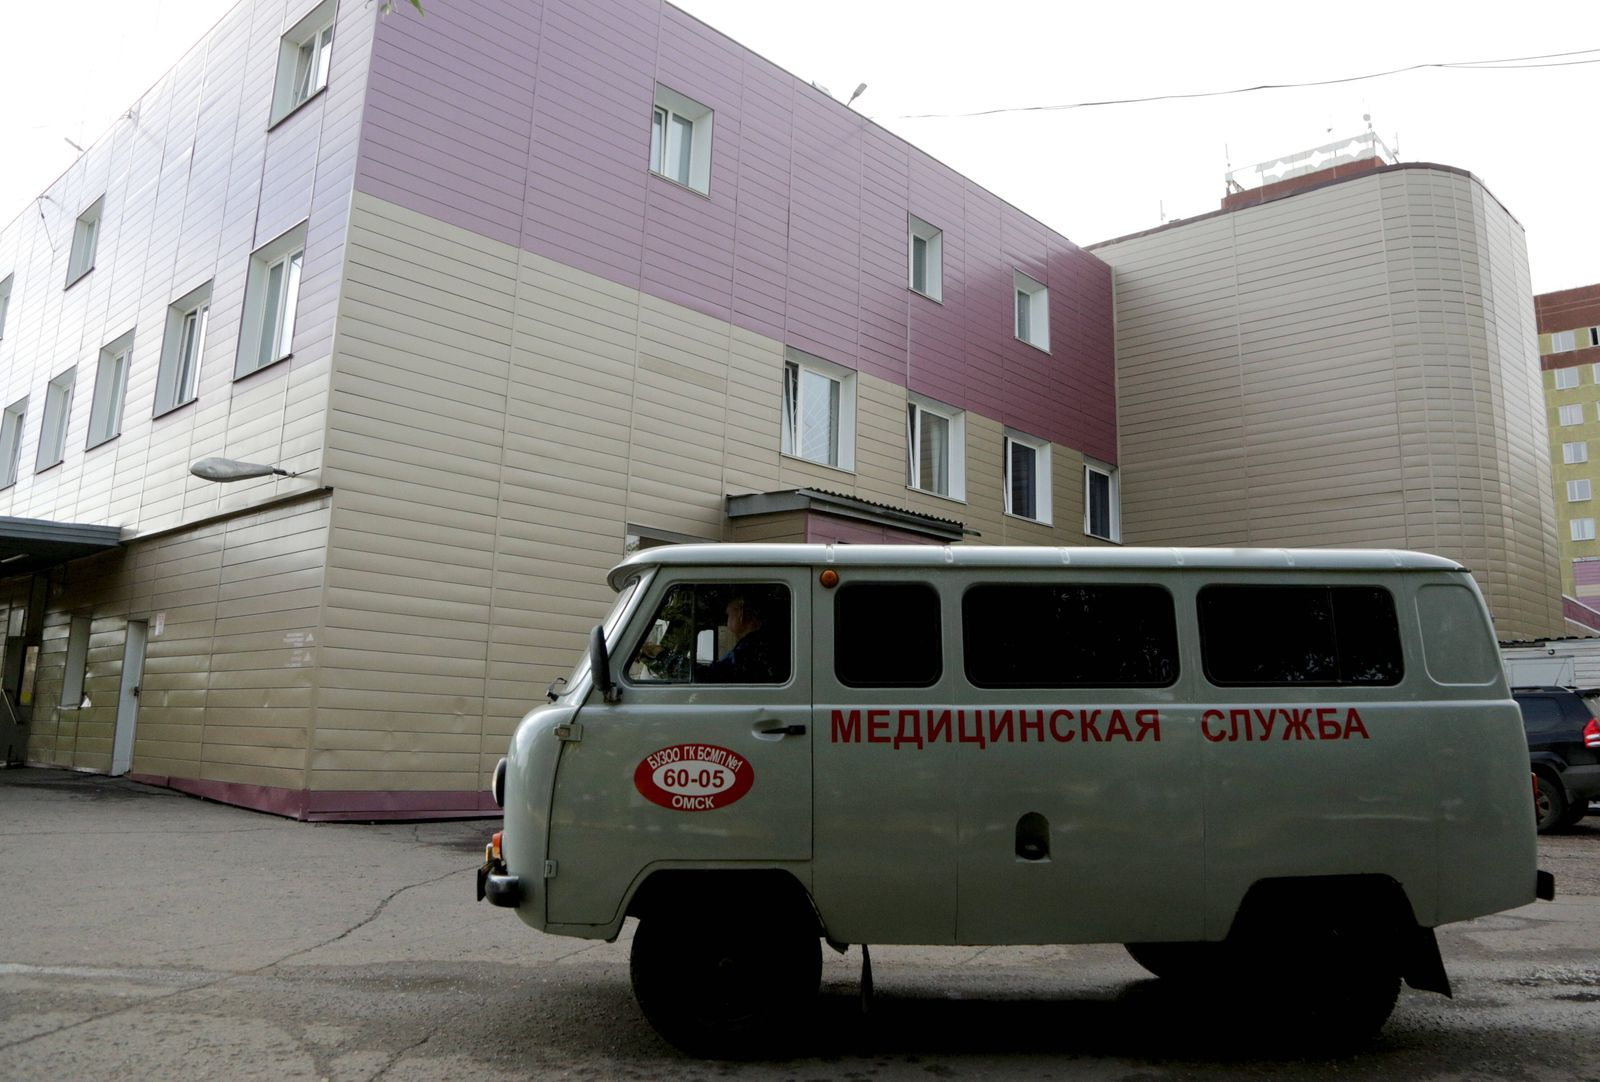 OMSK, RUSSIA - AUGUST 21, 2020: A healthnare service vehicle is parked outside Omsk Ambulance Hospital No 1 where Russi